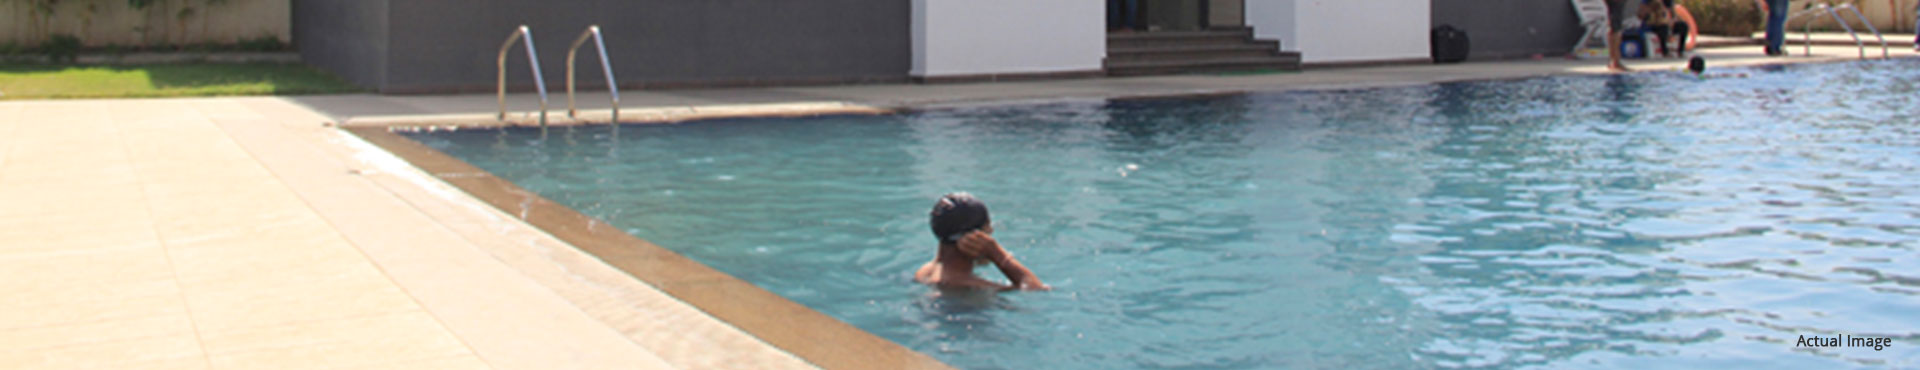 IVY APARTMENTS PROJECT AMENITIES- Swimming Pool